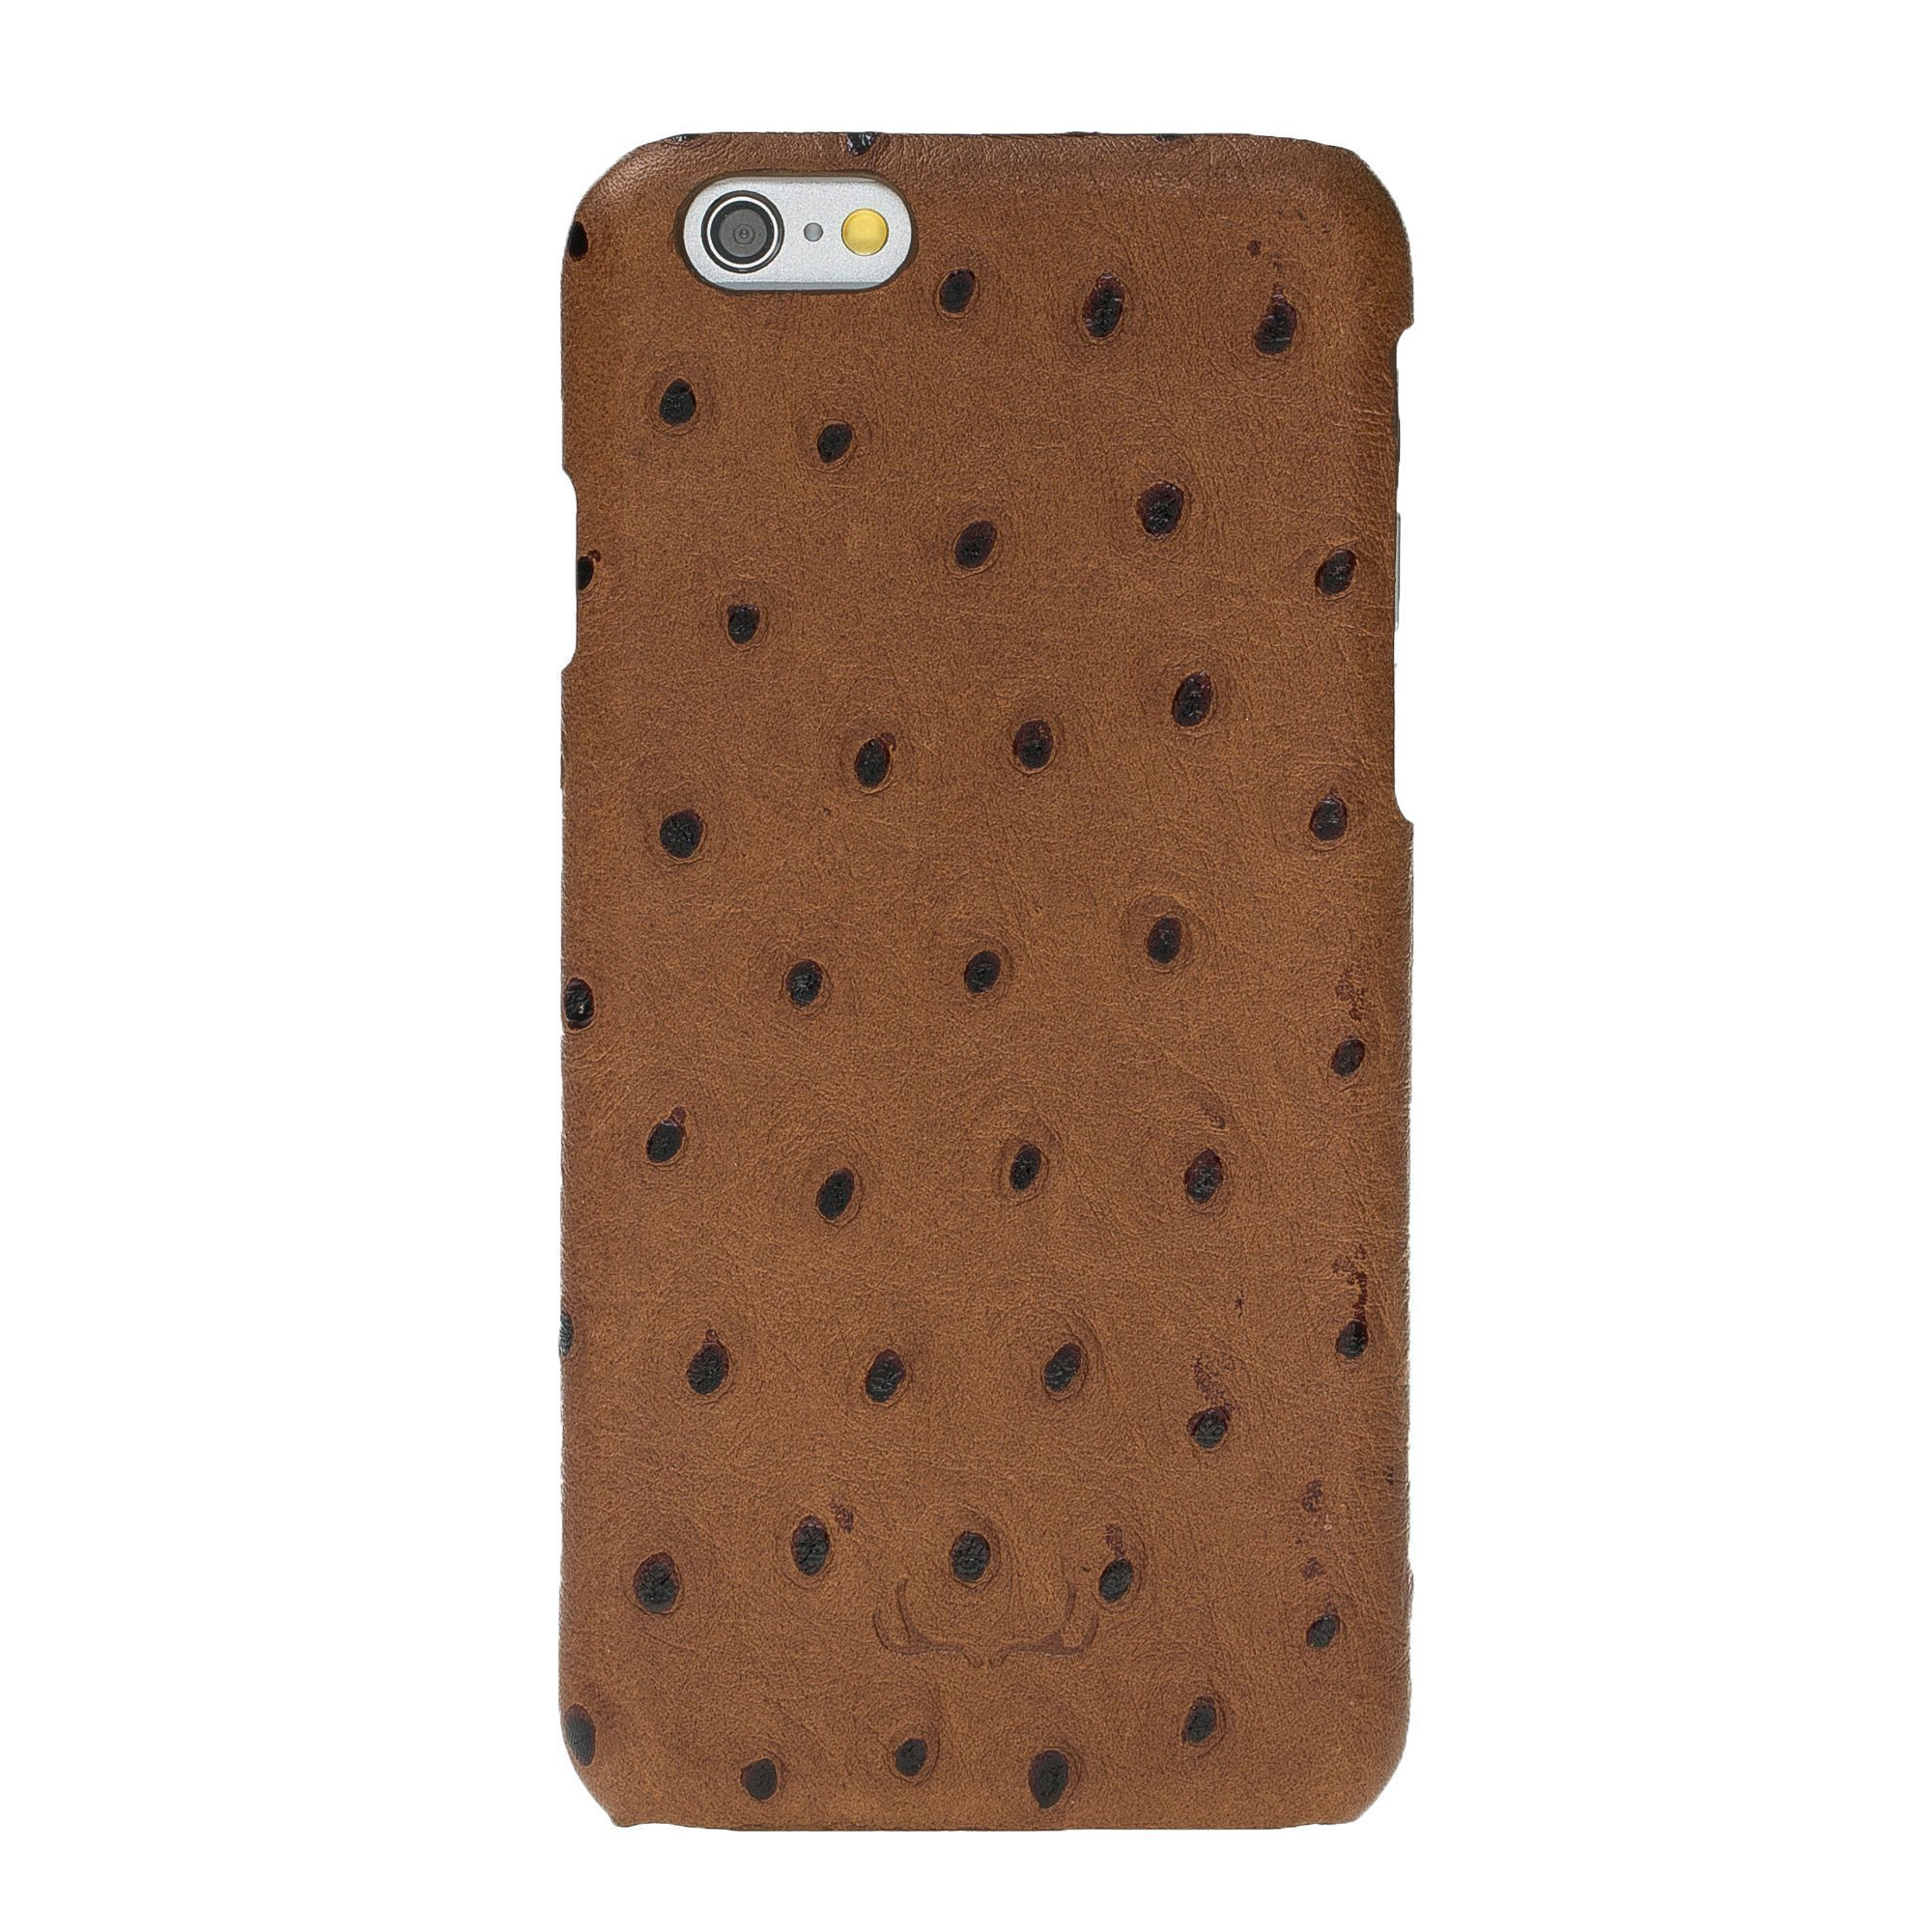 BNT Ultimate Jacket Leather Cases - Ostrich - iPhone 6/6S - Camel